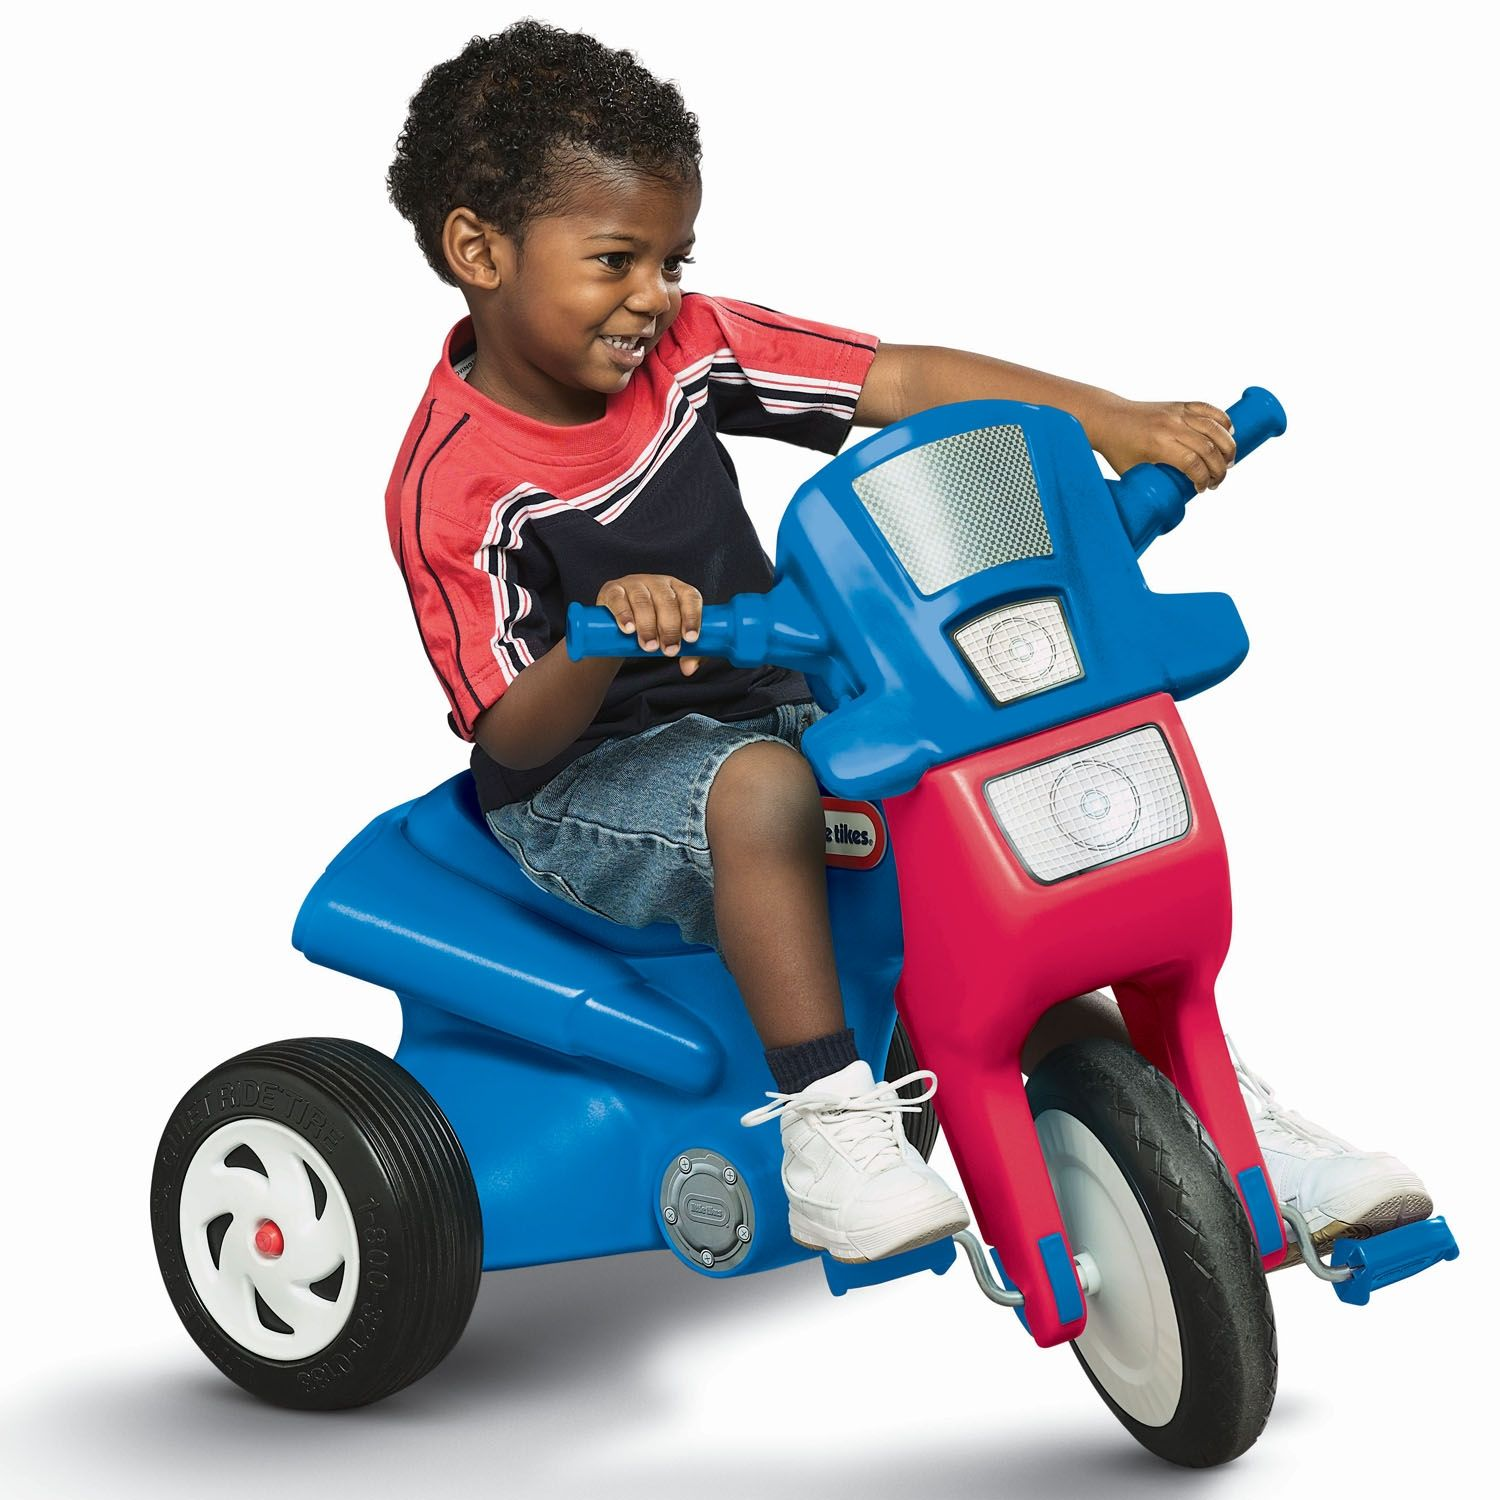 Classic Sport Cycle Outside toys for kids, Ride on toys